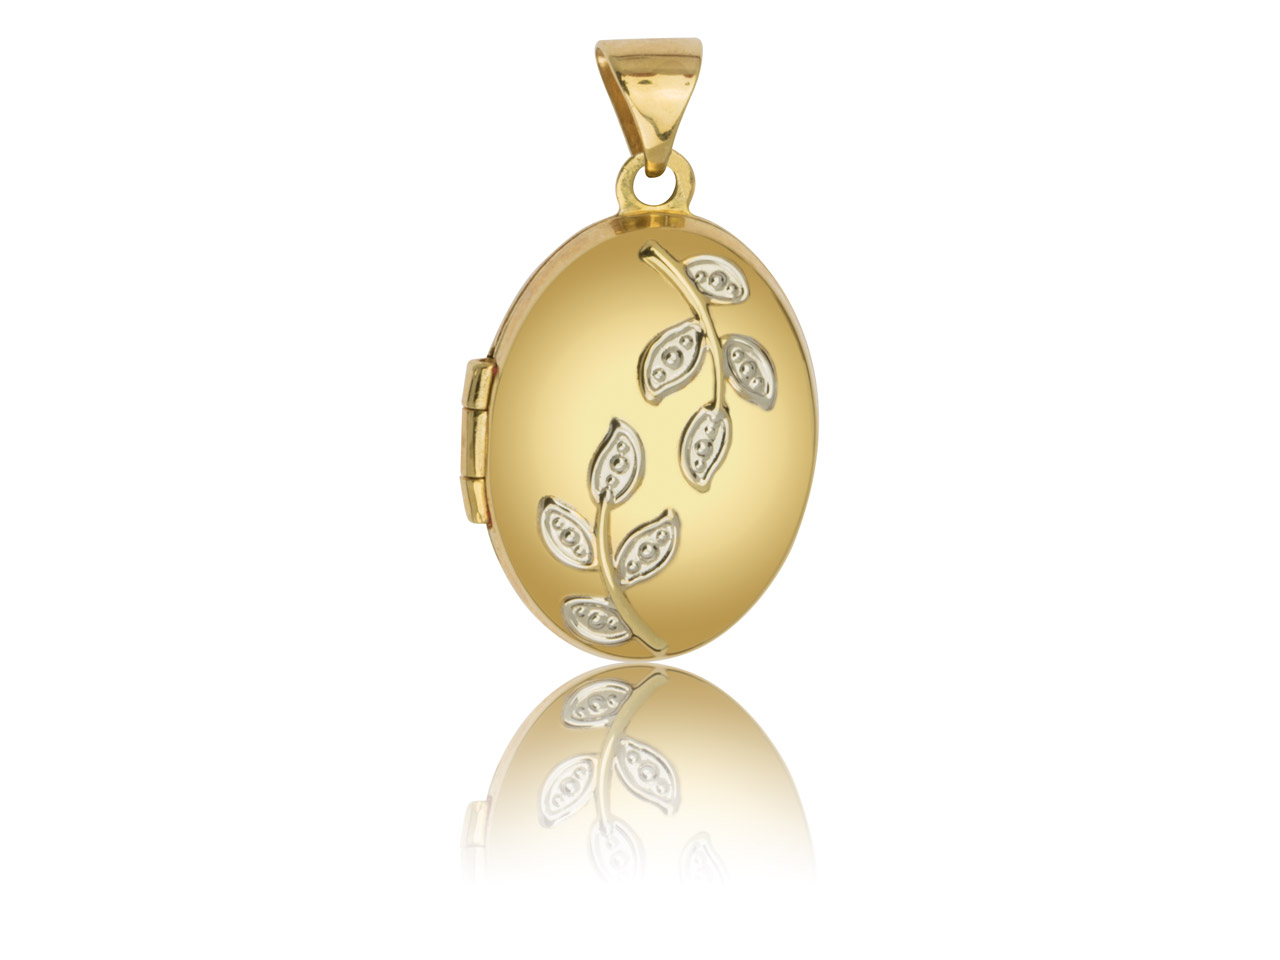 9ct Yellow Oval Locket With Leaves Detail, 17x13mm